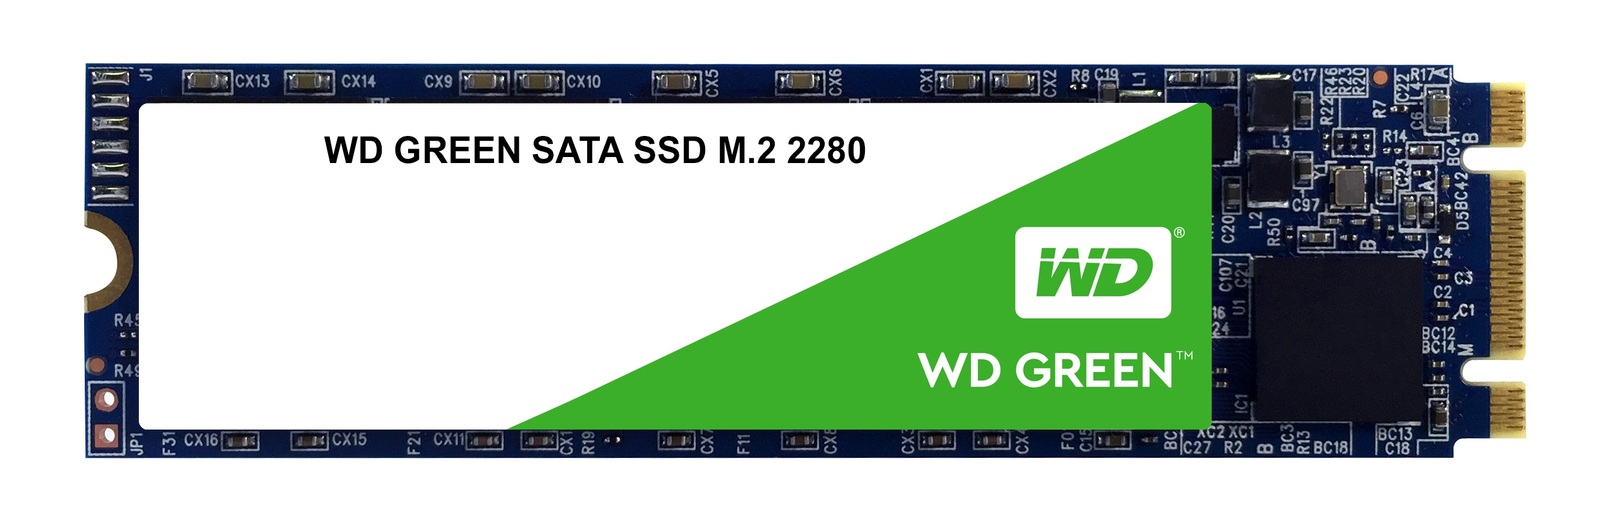 120GB WD Green 3D Nand - M.2 Internal SSD image